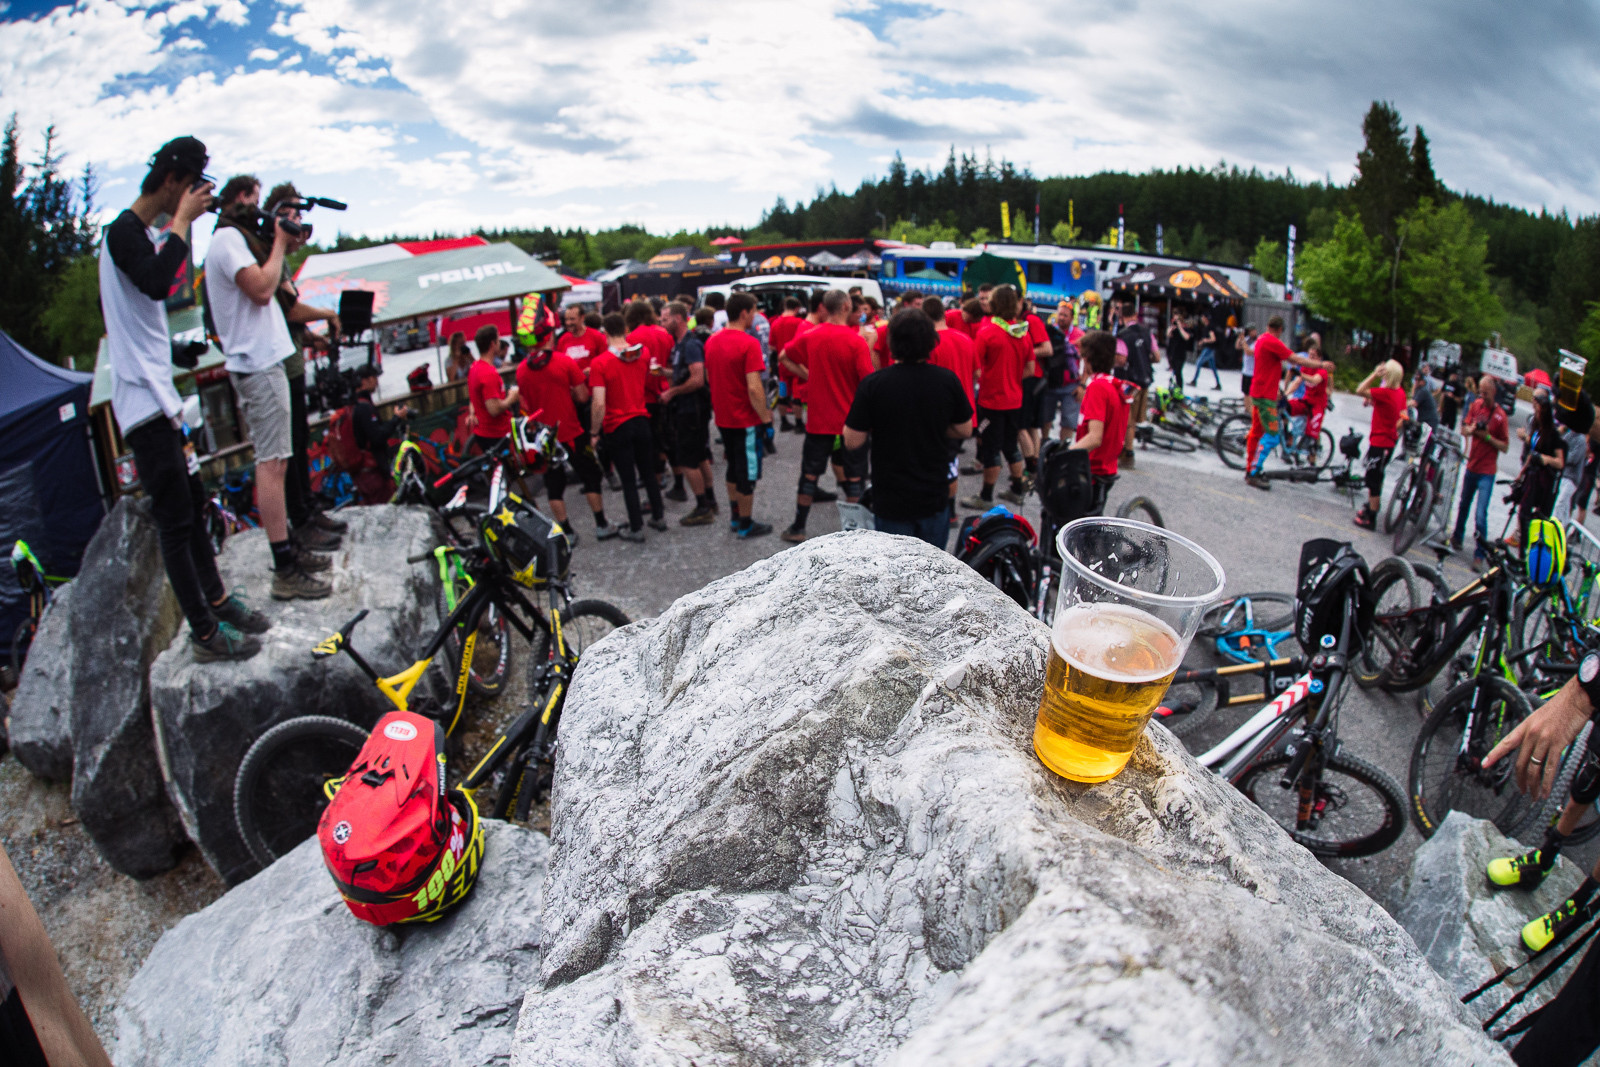 Steve Smith Memorial - PIT BITS - Fort William World Cup - Mountain Biking Pictures - Vital MTB